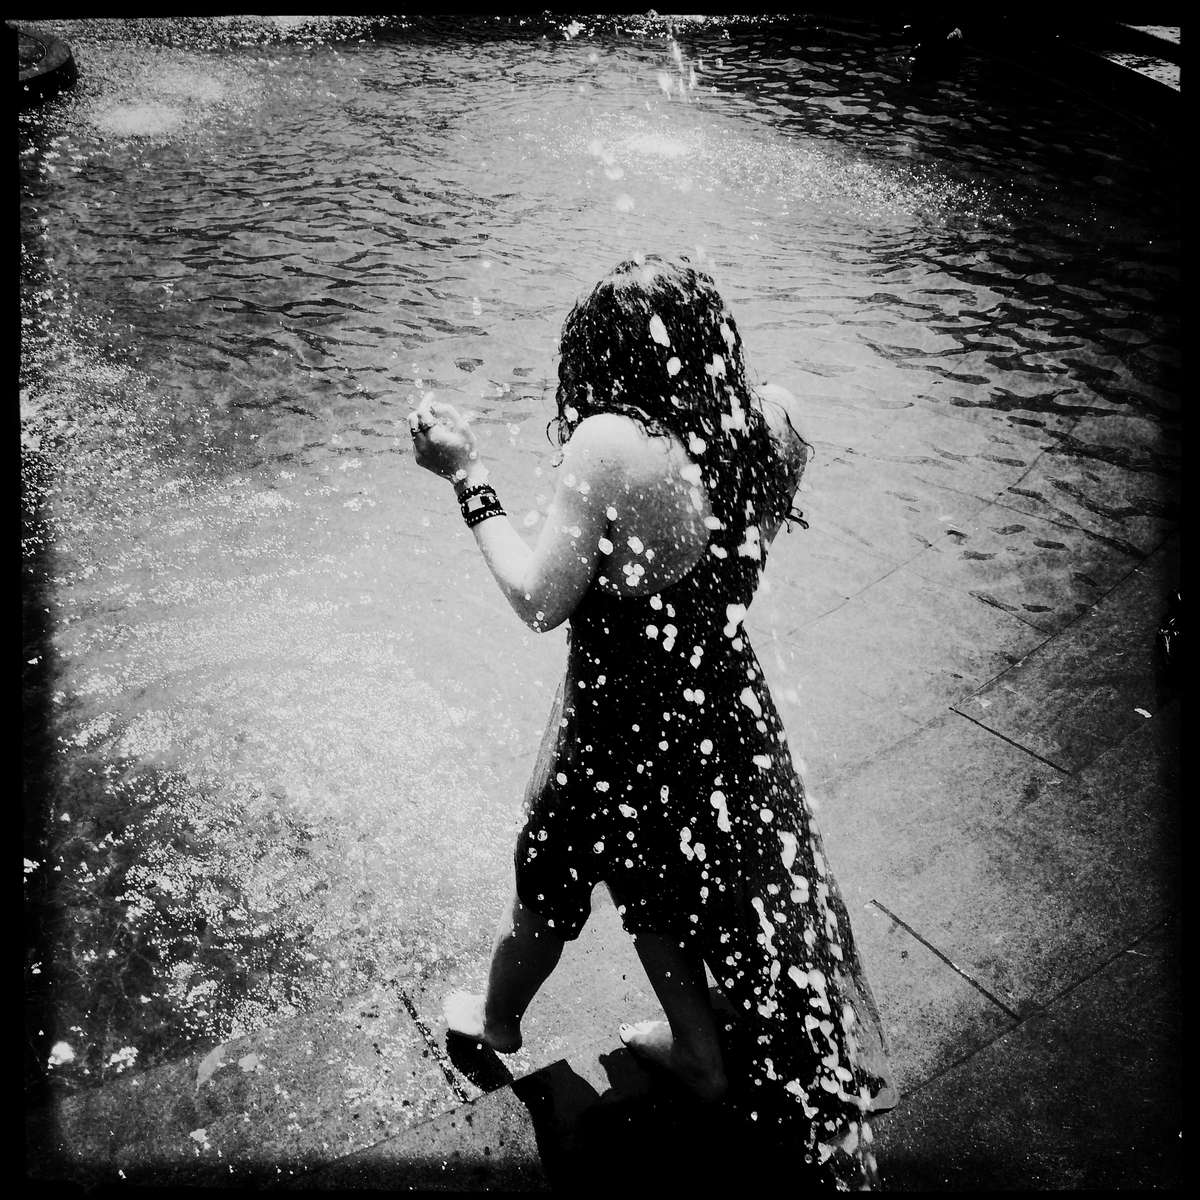 Splash on a girl in Washington Sq Park during a hot summer.